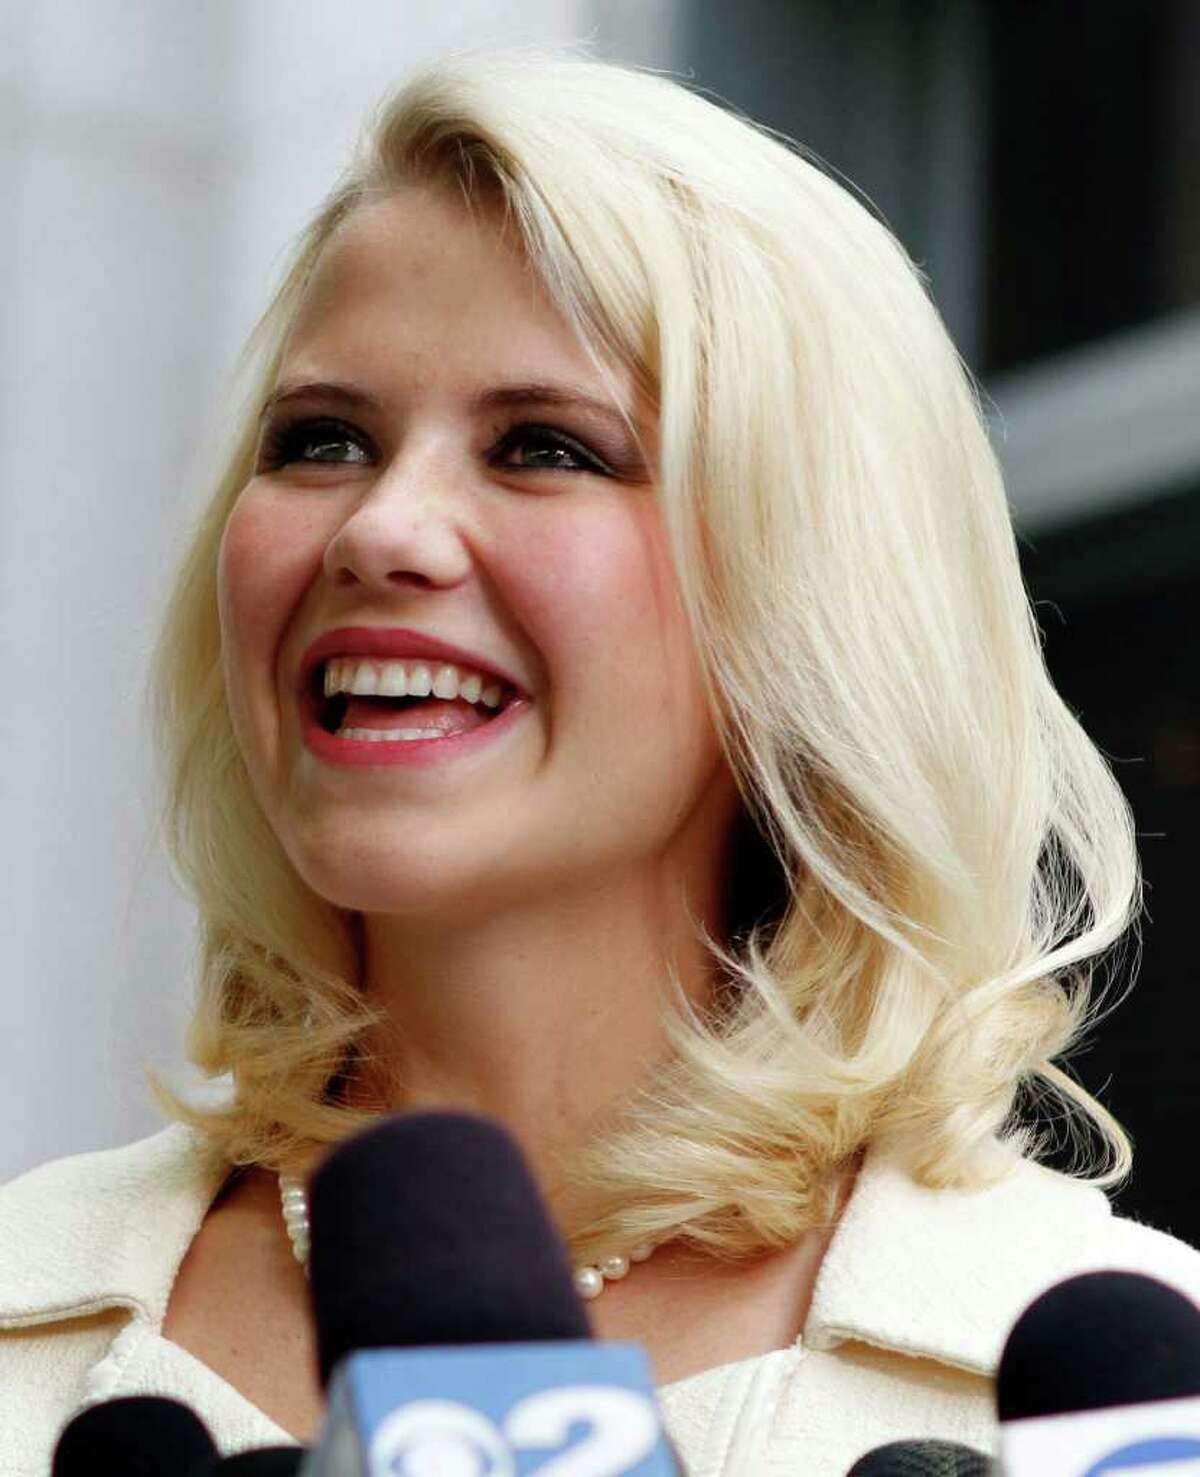 FILE - This May 25, 2011 file photo shows Elizabeth Smart talking to the media in front of the Frank E. Moss Federal Courthouse in Salt Lake City. A family spokesman says the Utah woman who was kidnapped at knifepoint at age 14 and held captive for nine months married Matthew Gilmour on Saturday Feb. 18, 2012 in Oahu. The 24-year-old Smart is a senior at Brigham Young University. She met Gilmour, of Aberdeen, Scotland, while serving a Church of Jesus Christ of Latter-day Saints mission in France. (AP Photo/Jim Urquhart, File)